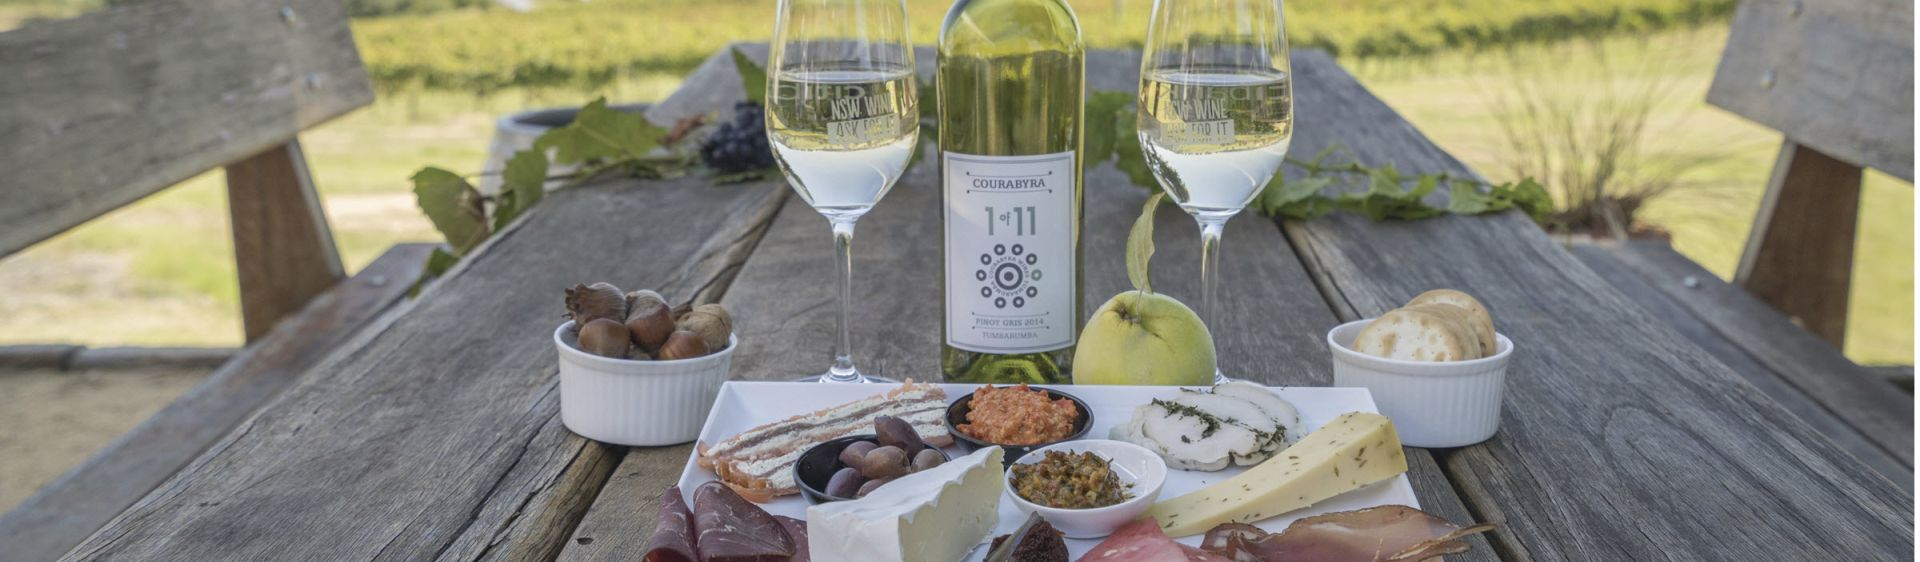 A cheese platter and pinot gris at Courabyra Wines, Tumbarumba